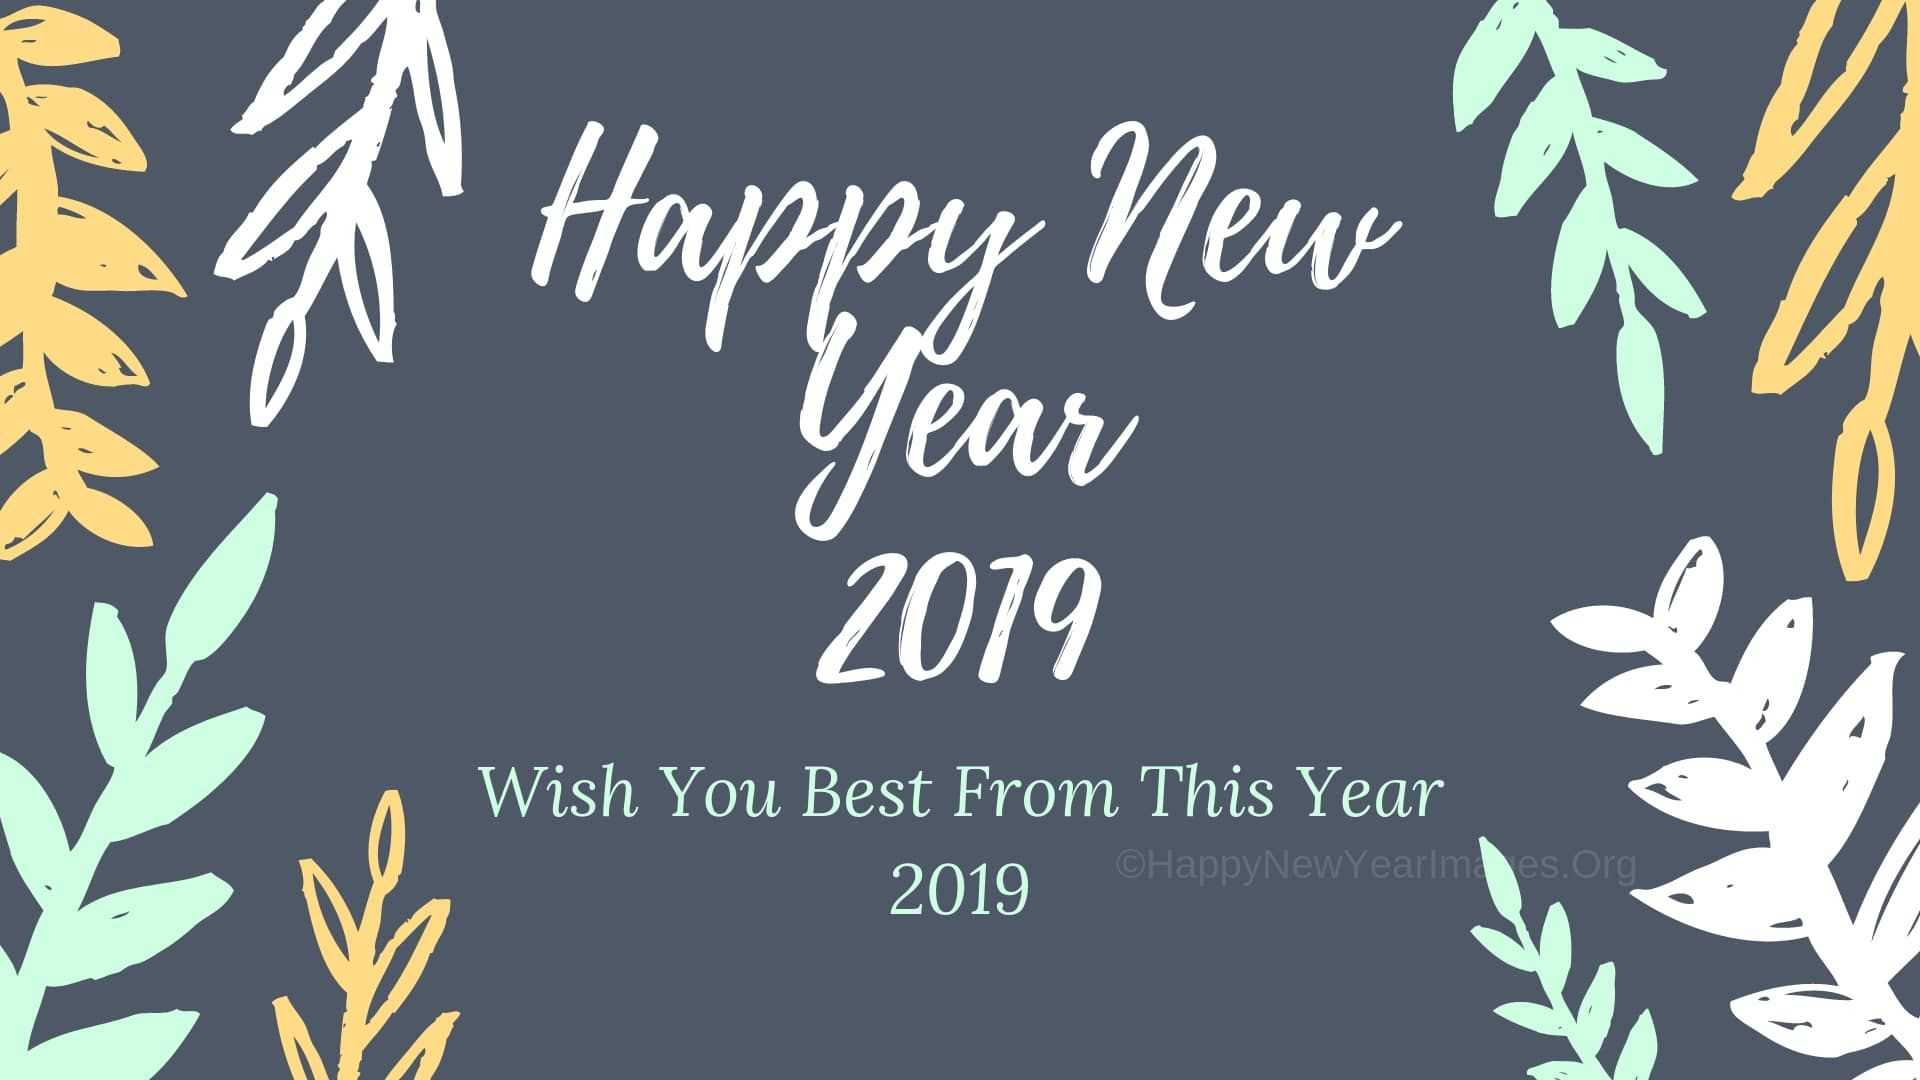 Happy New Year 2020 Images, Pictures, Photos For Facebook